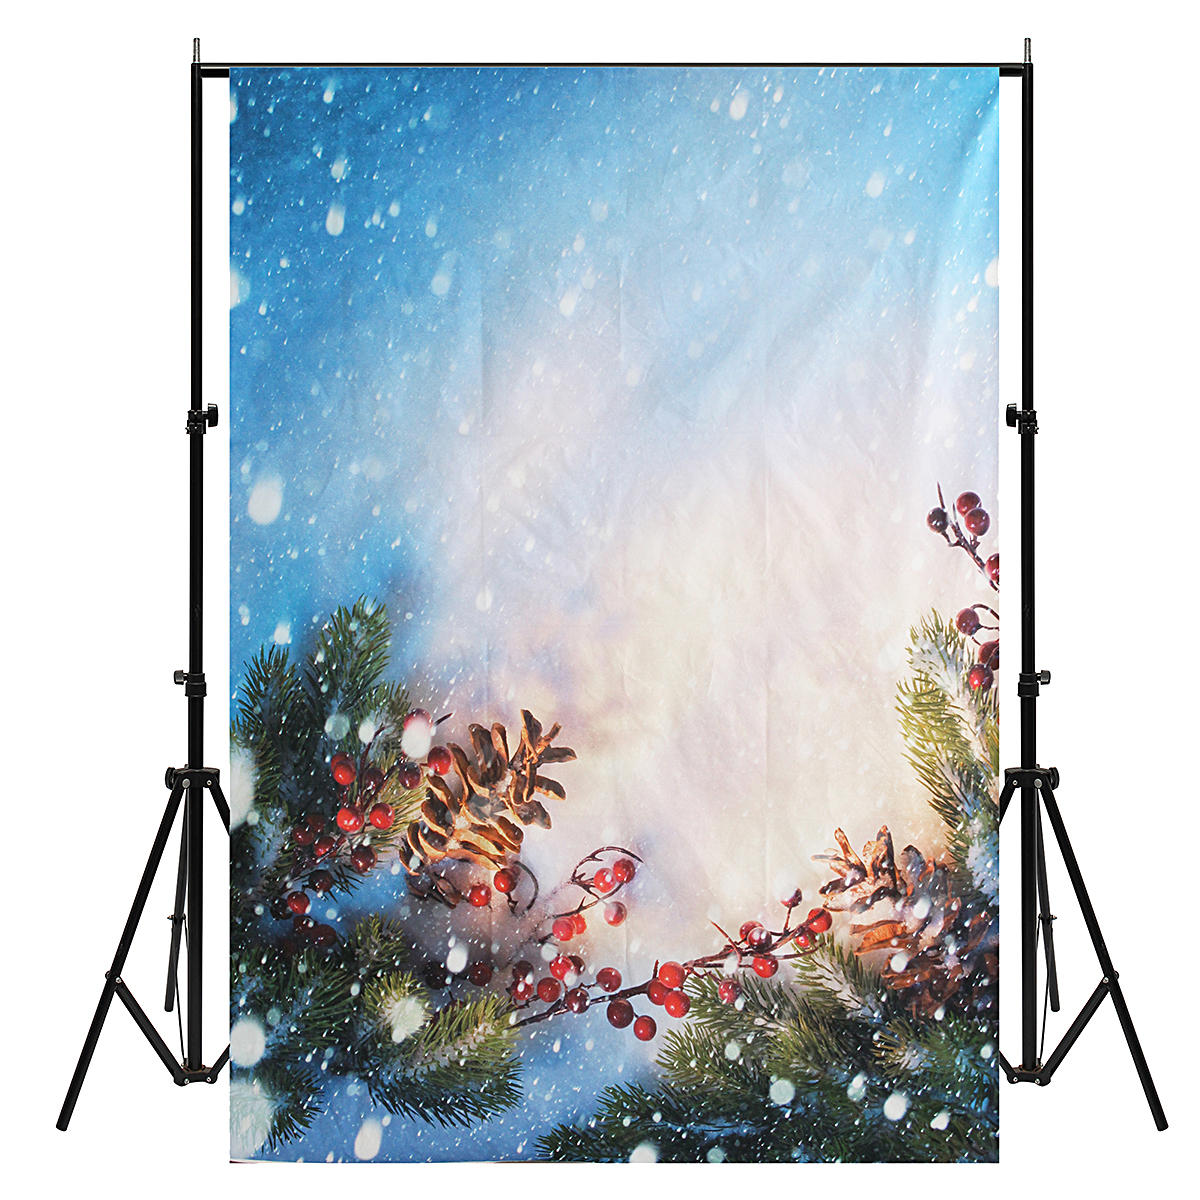 5X7ft Christmas Snow Vinyl Photography Studio Backdrop Photo Background